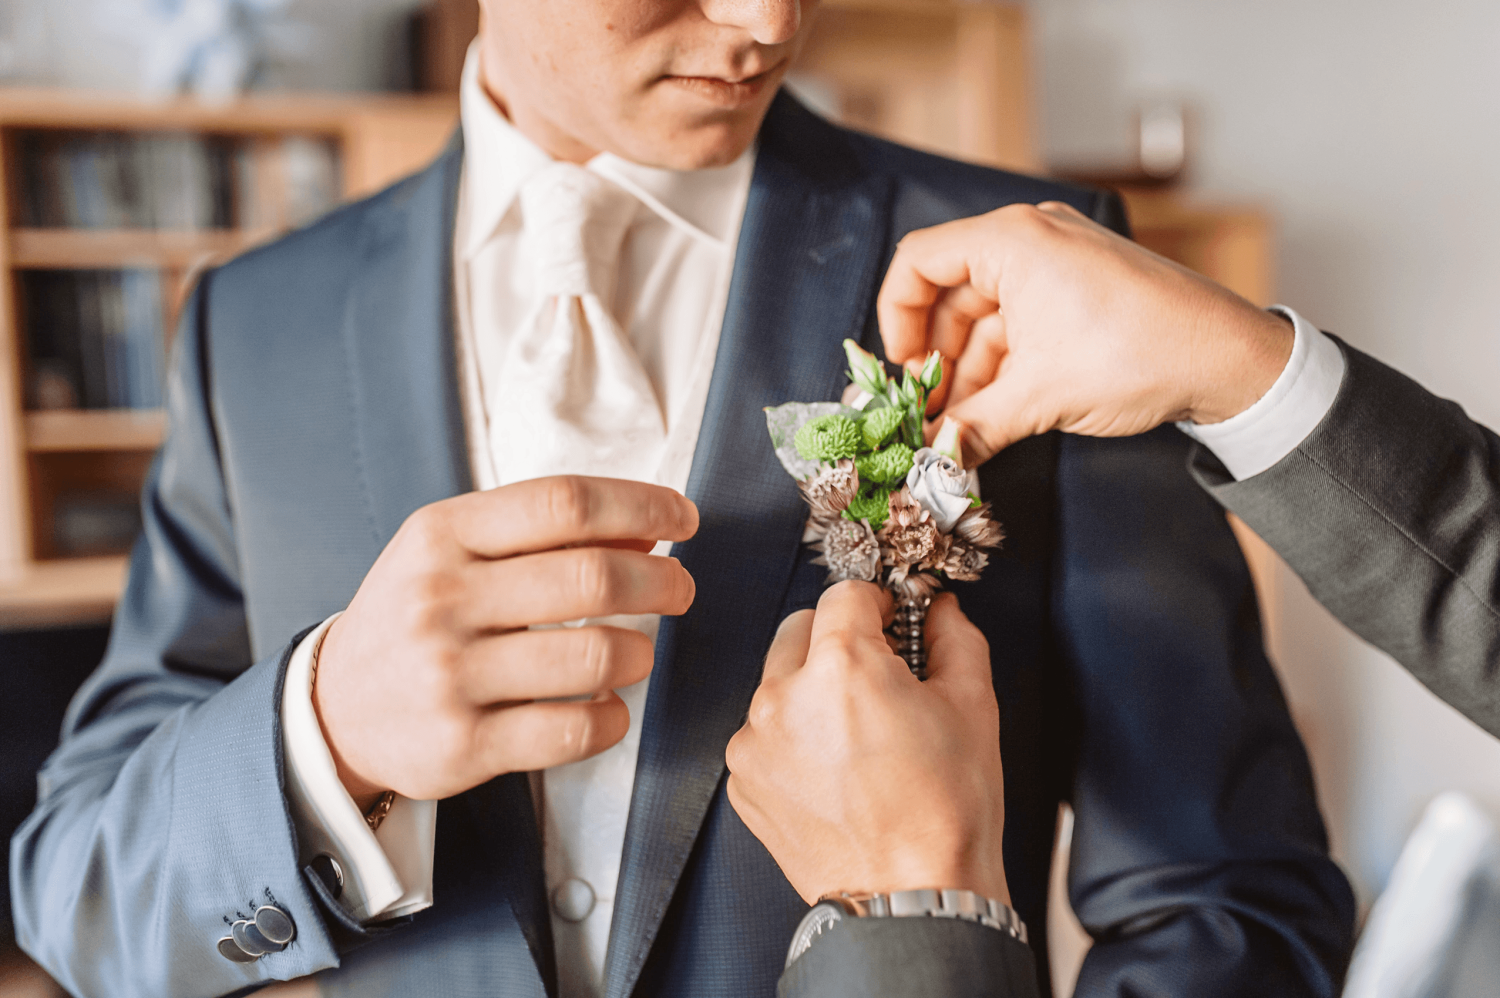 A groom having a flower arrangement attached to their pocket by a helper inside the groom suite at Paradise Banquet Halls.